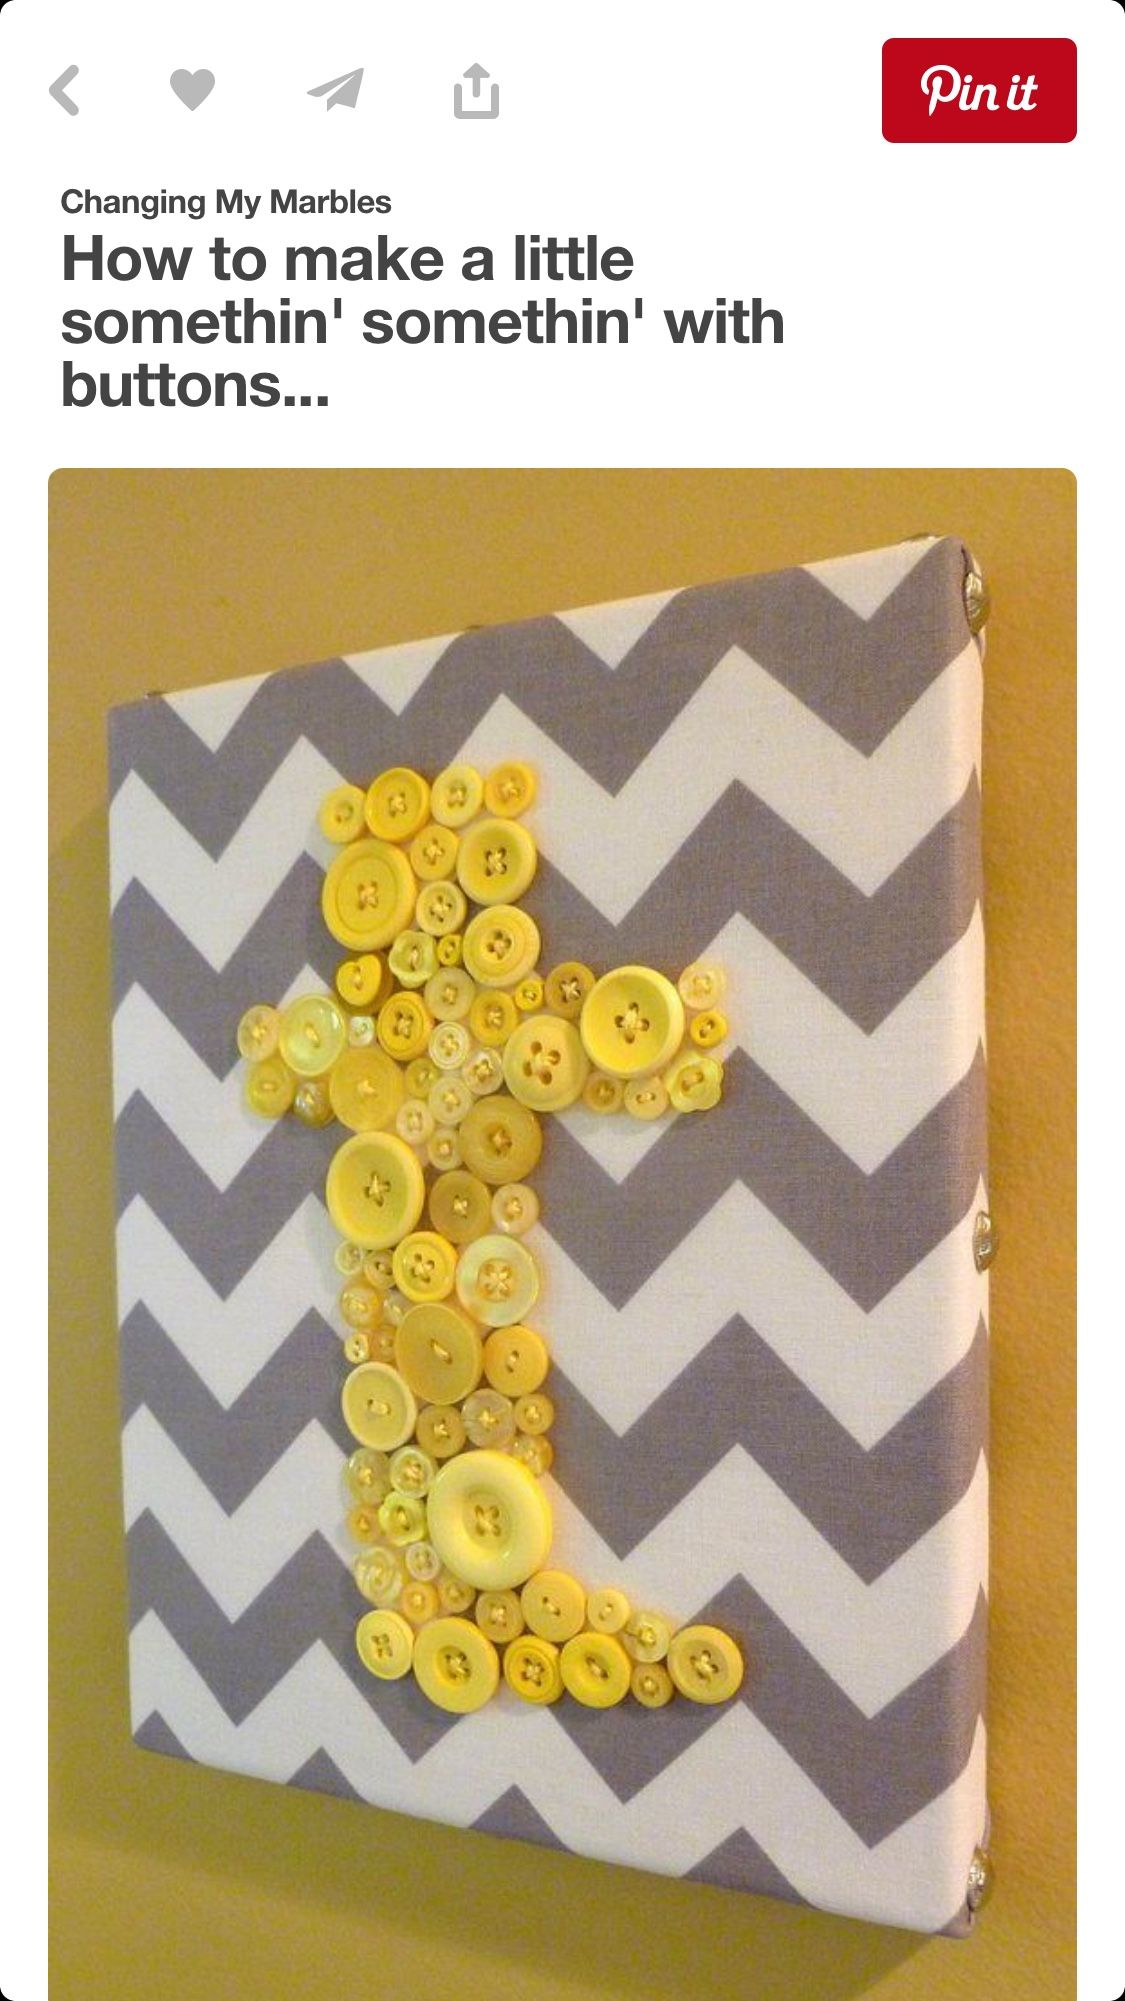 Pin by Brooke Dunn on BABY - Nursery Ideas | Pinterest | Baby ...